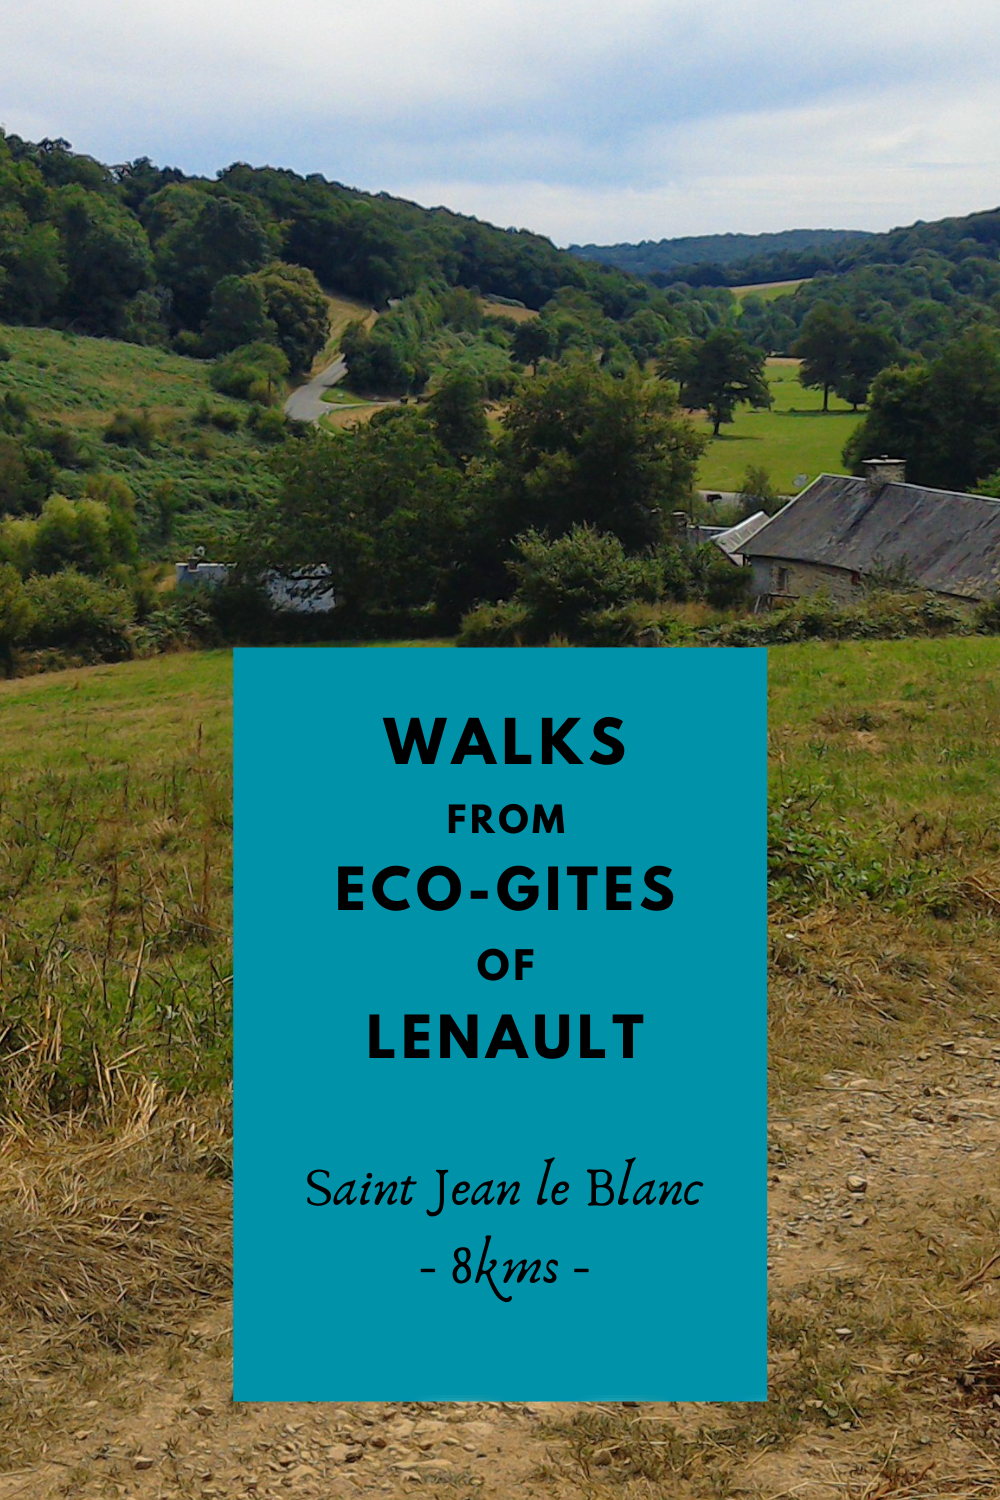 Walk from Eco-Gites of Lenault to Saint Jean le Blanc, Normandy, France